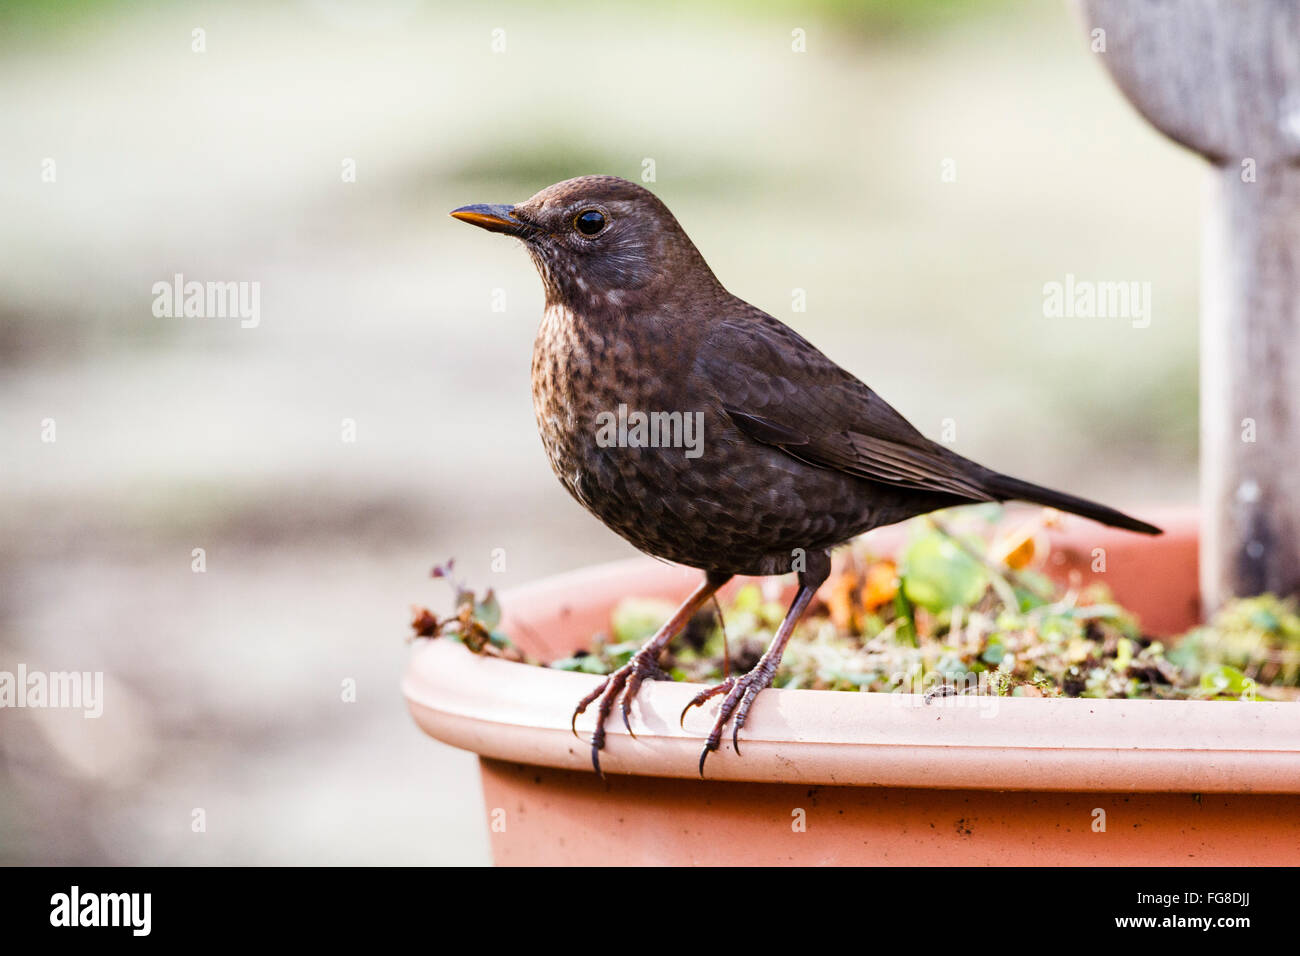 Female Blackbird (Turdus merula) standing on a flower pot in an English garden, East Sussex, England, UK - Stock Image